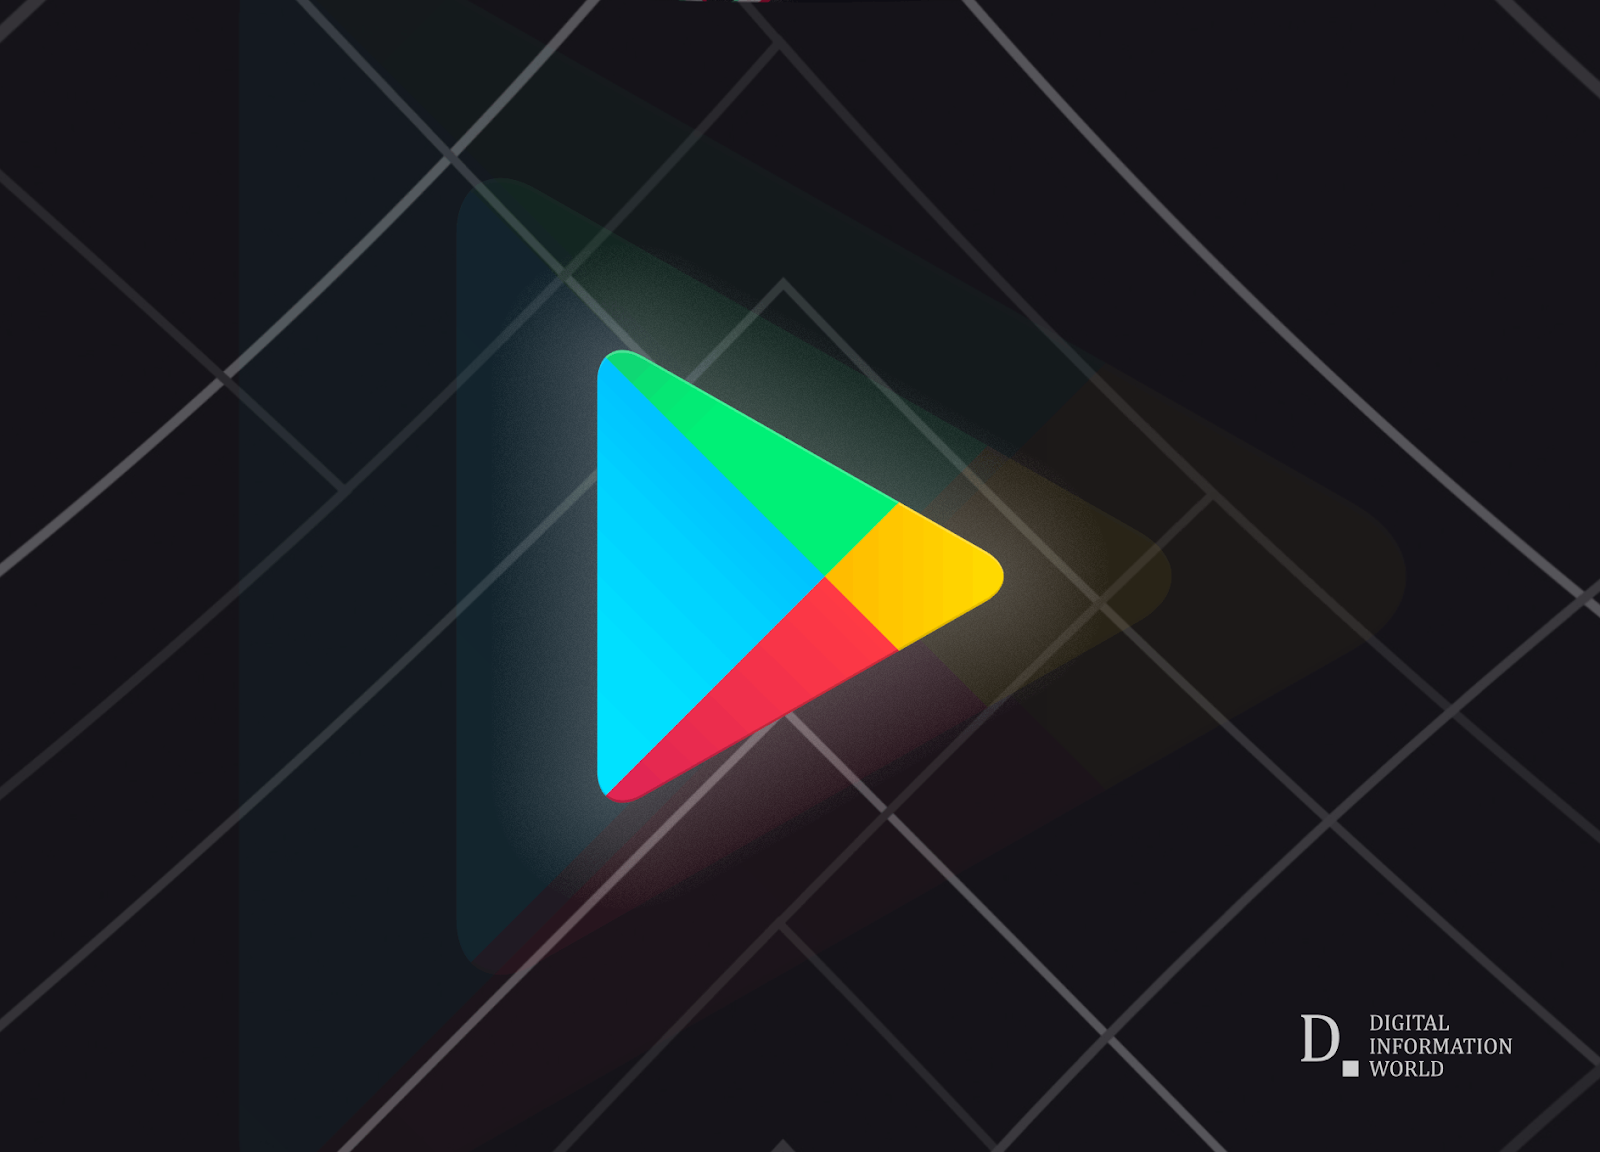 Google Play puts an end to almost 600 apps for showing disruptive ads - Digital Information World